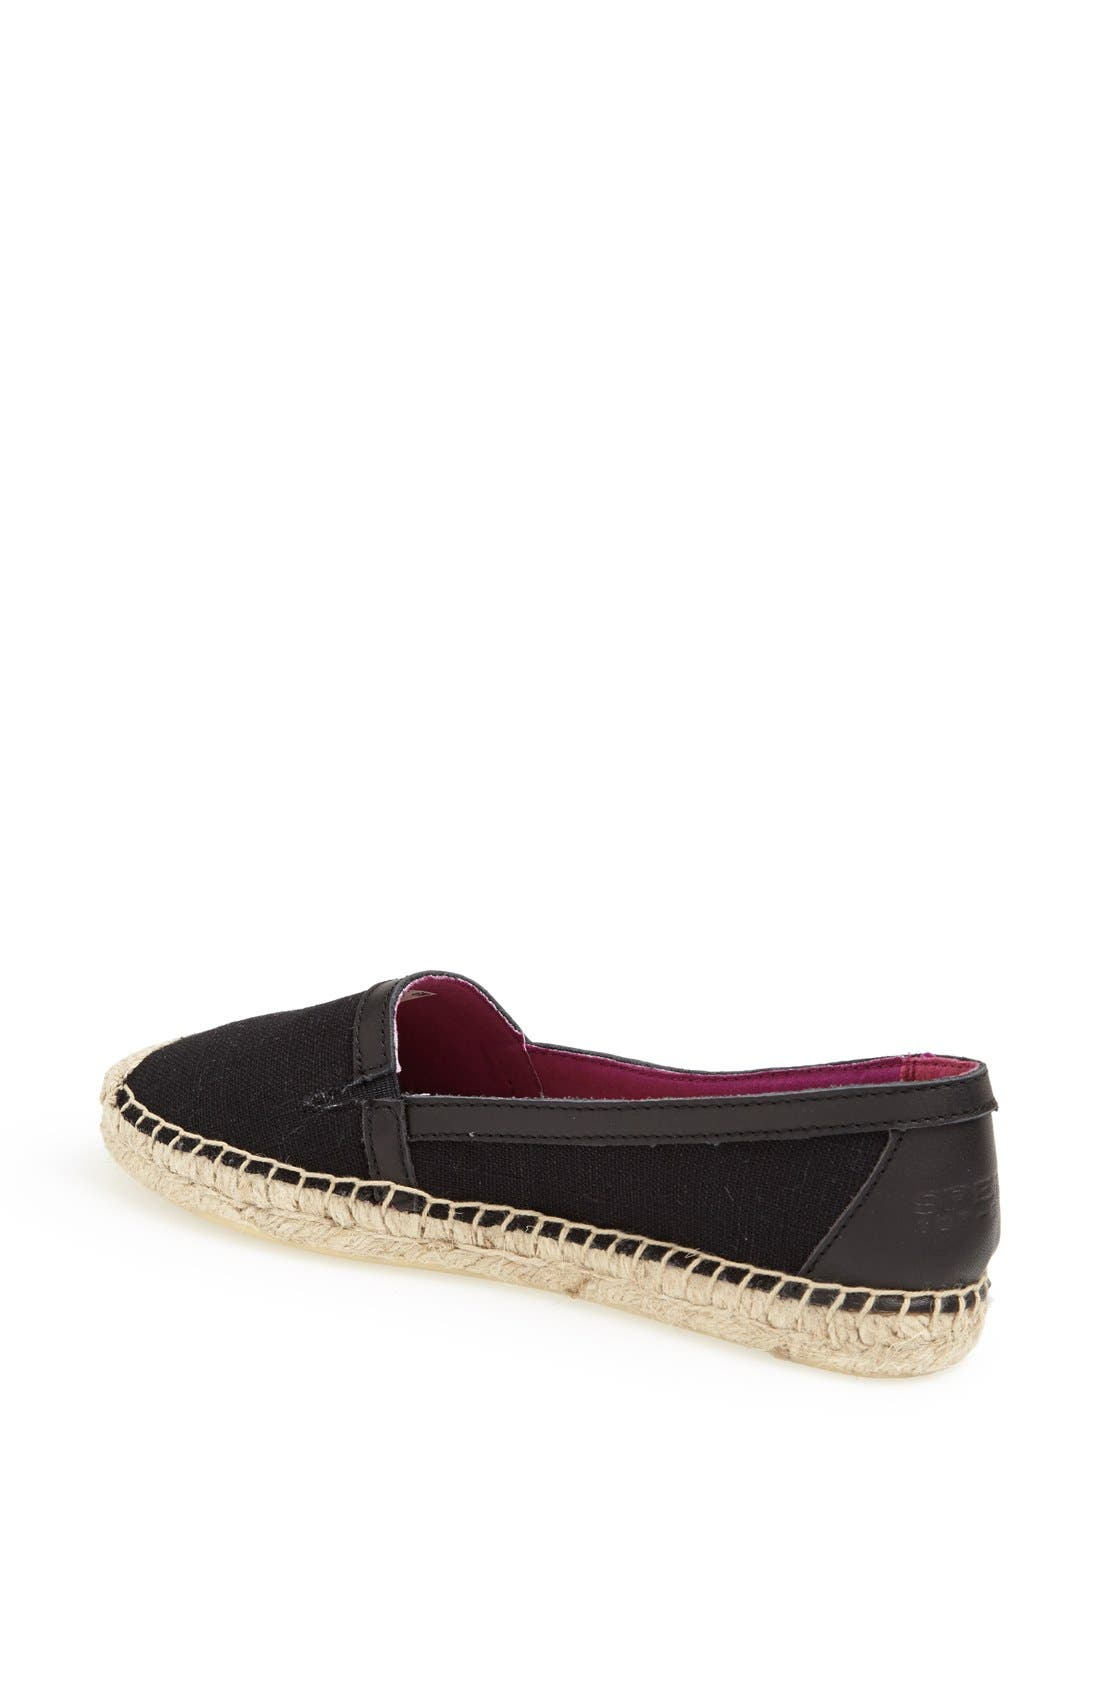 SPERRY, DANICA FLAT, Alternate thumbnail 2, color, 001